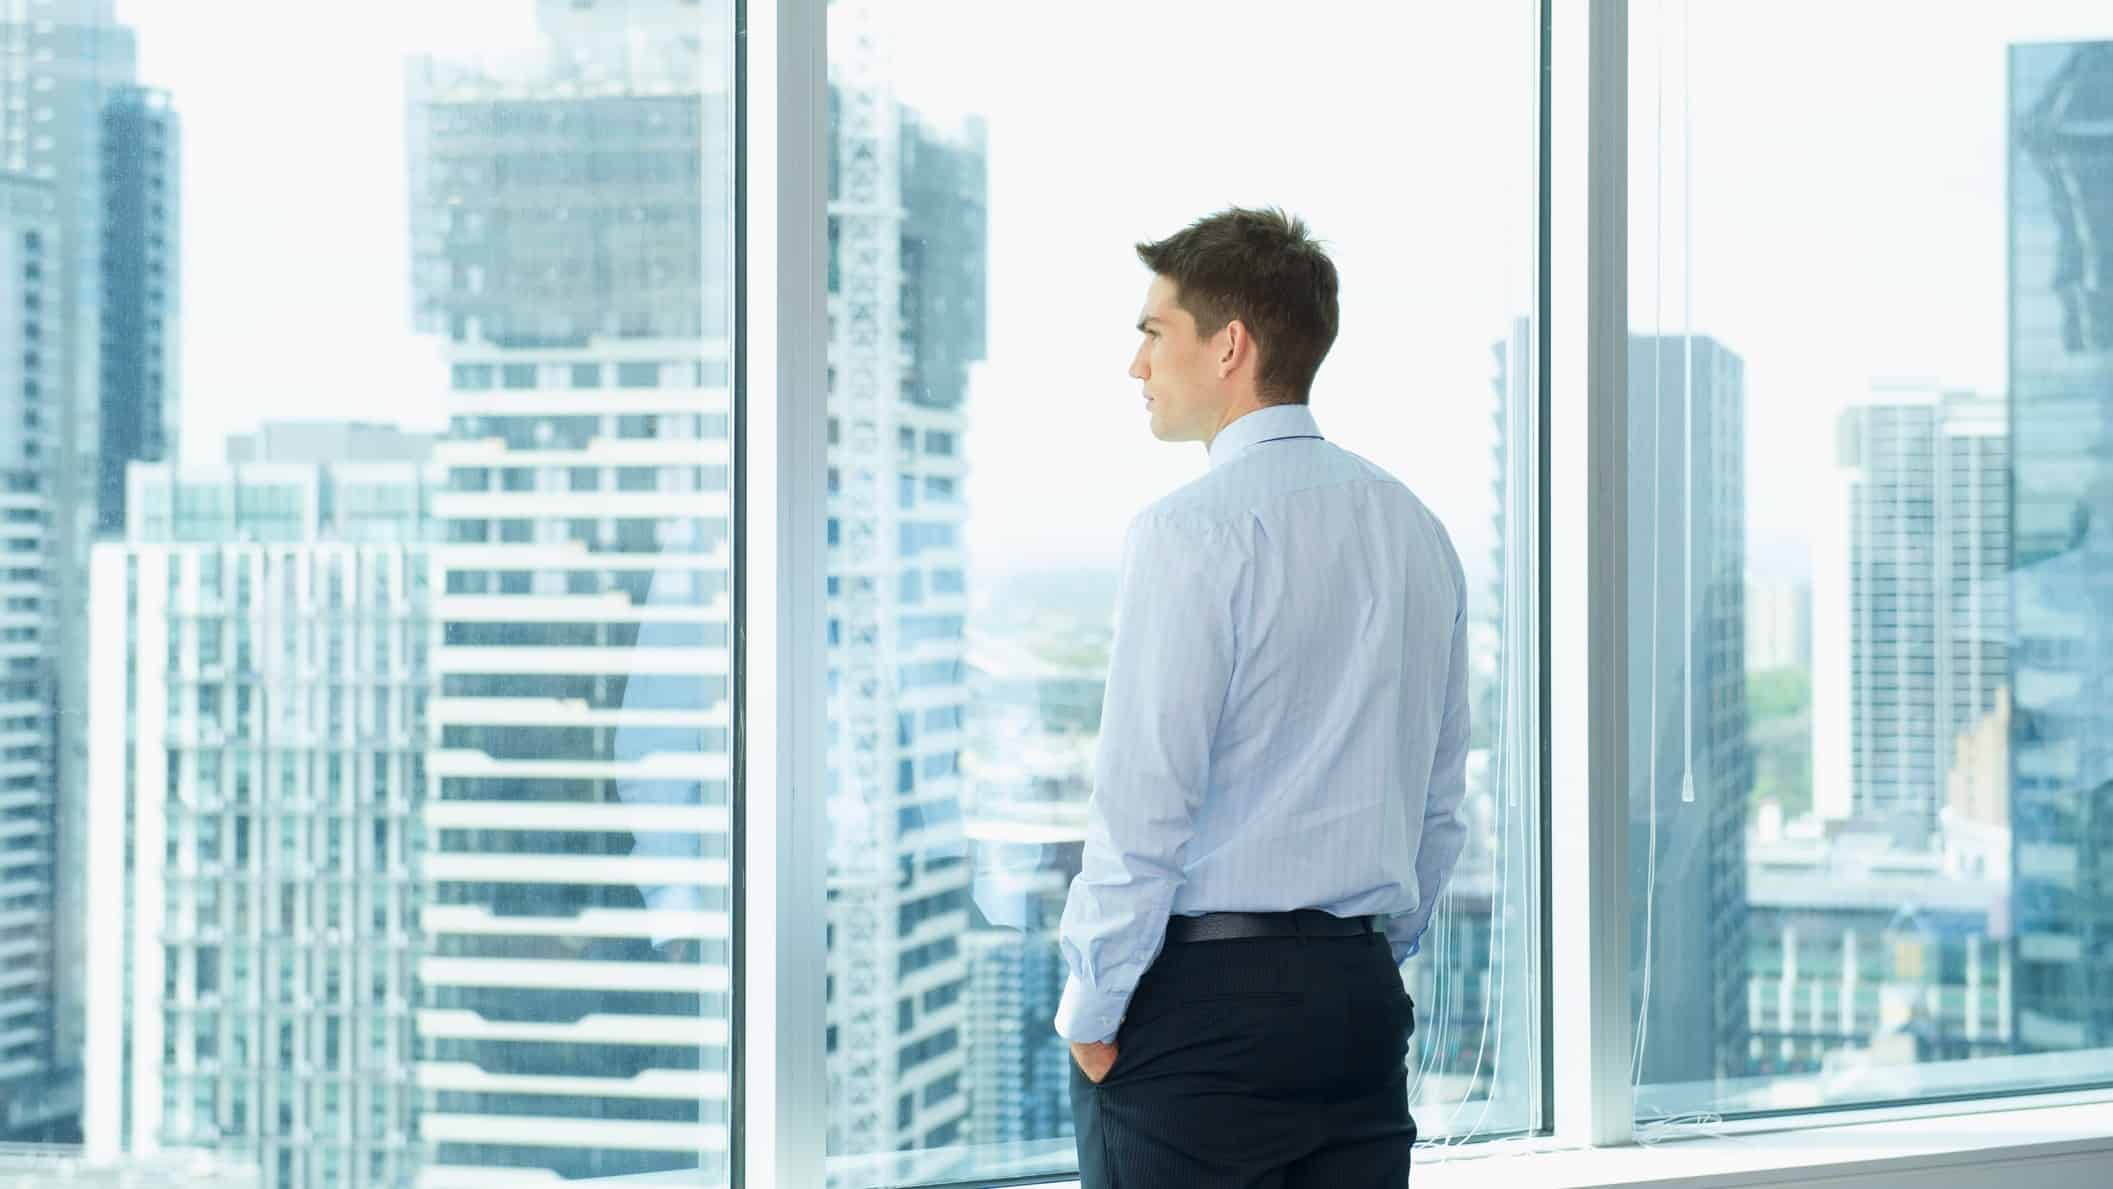 a man with hands in pockets and a serious look on his face stares out of an office window onto a landscape of highrise office buildings in an urban landscape